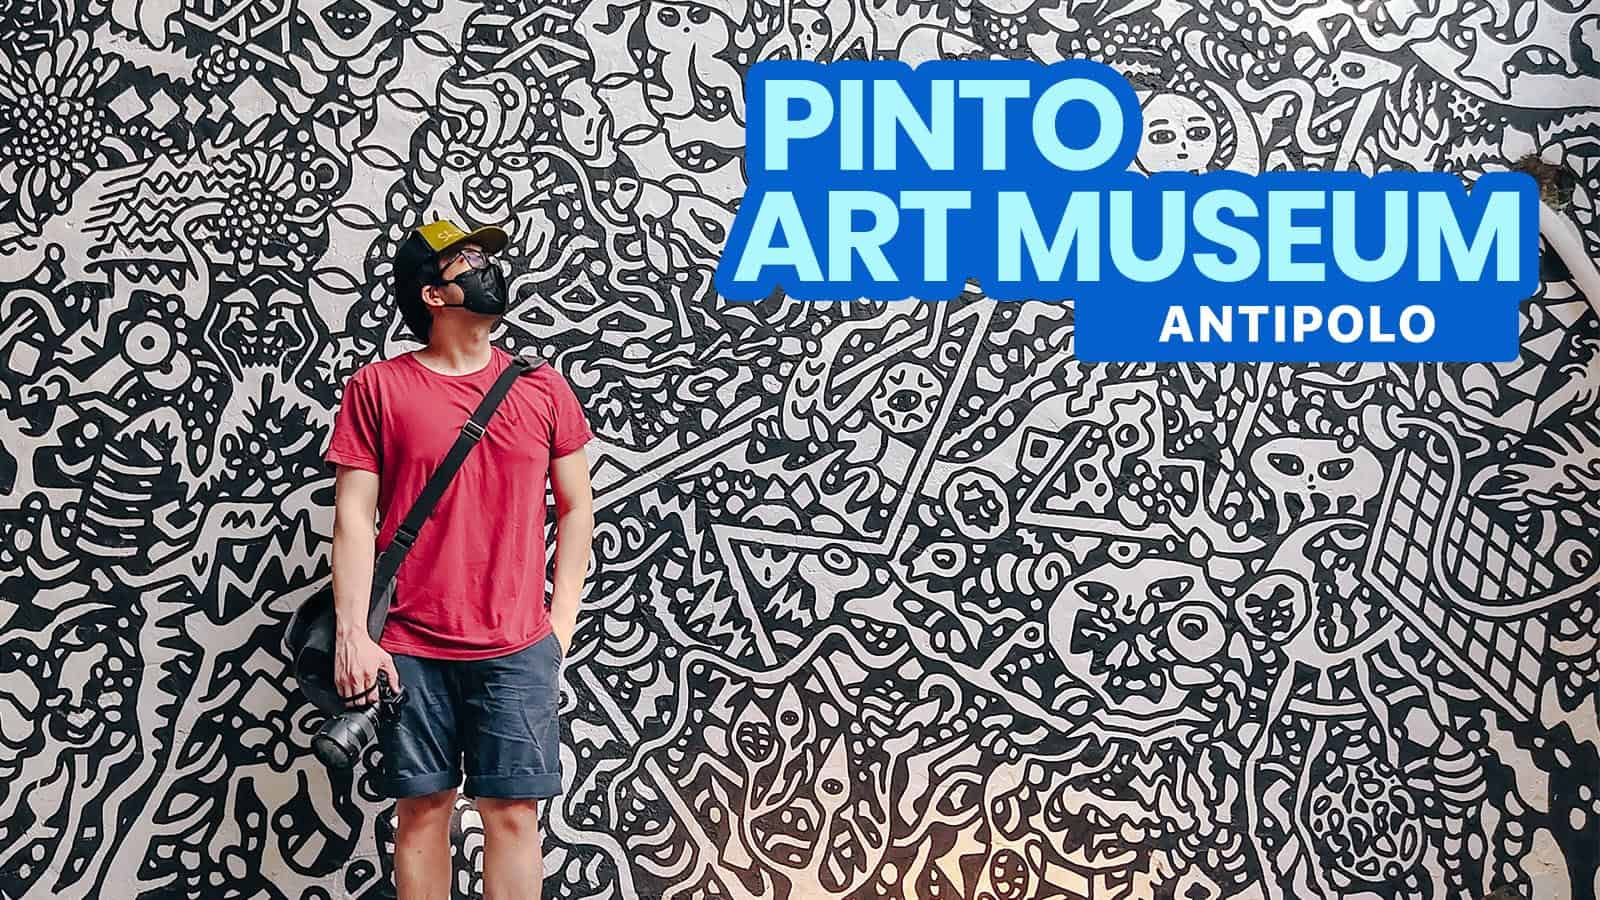 2021 PINTO ART MUSEUM Travel Guide & New Normal Guidelines